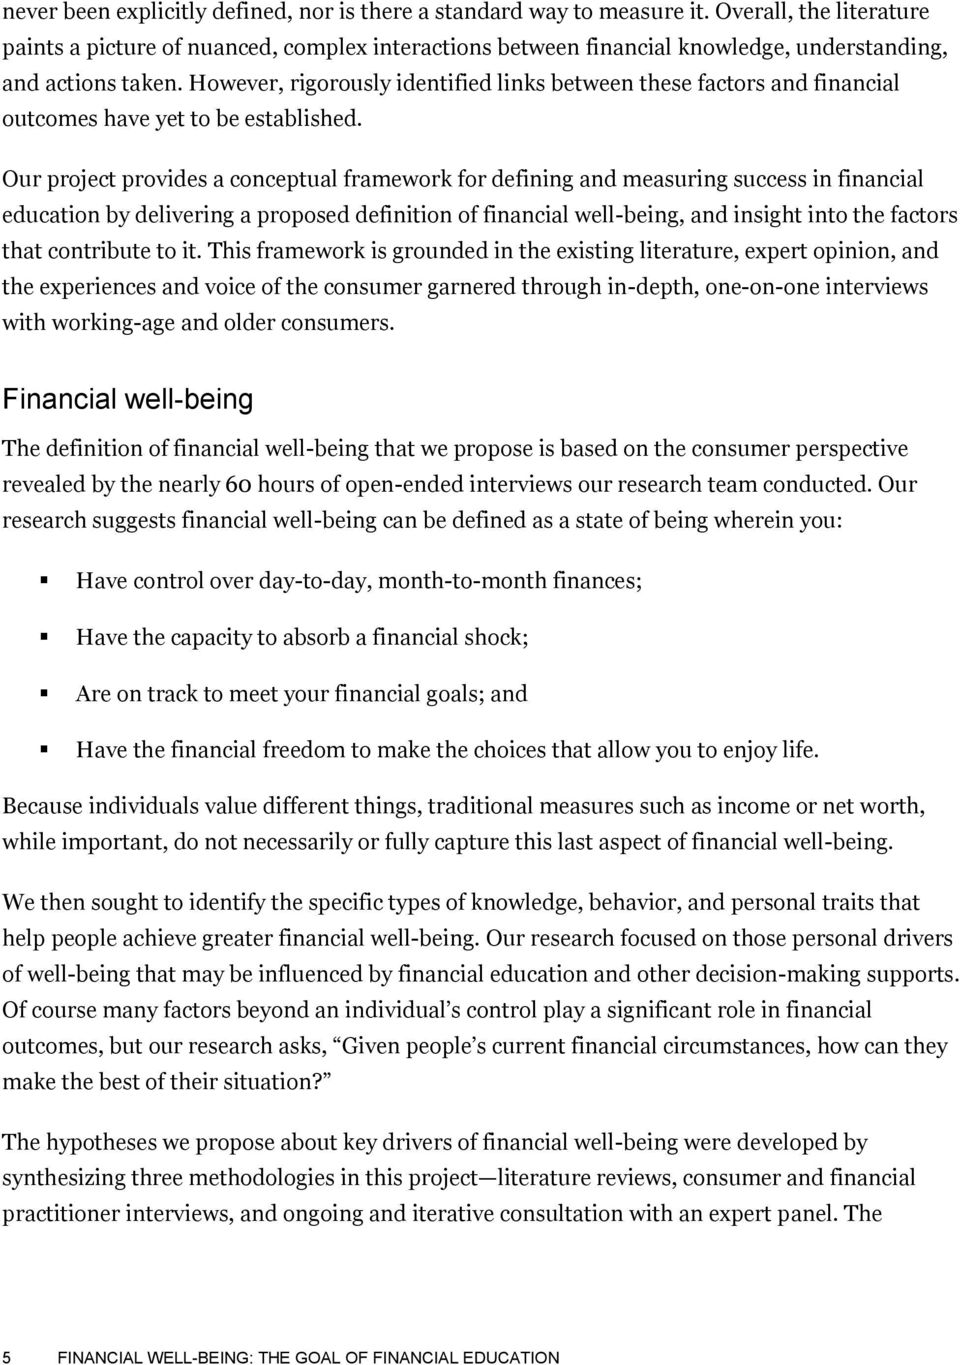 However, rigorously identified links between these factors and financial outcomes have yet to be established.